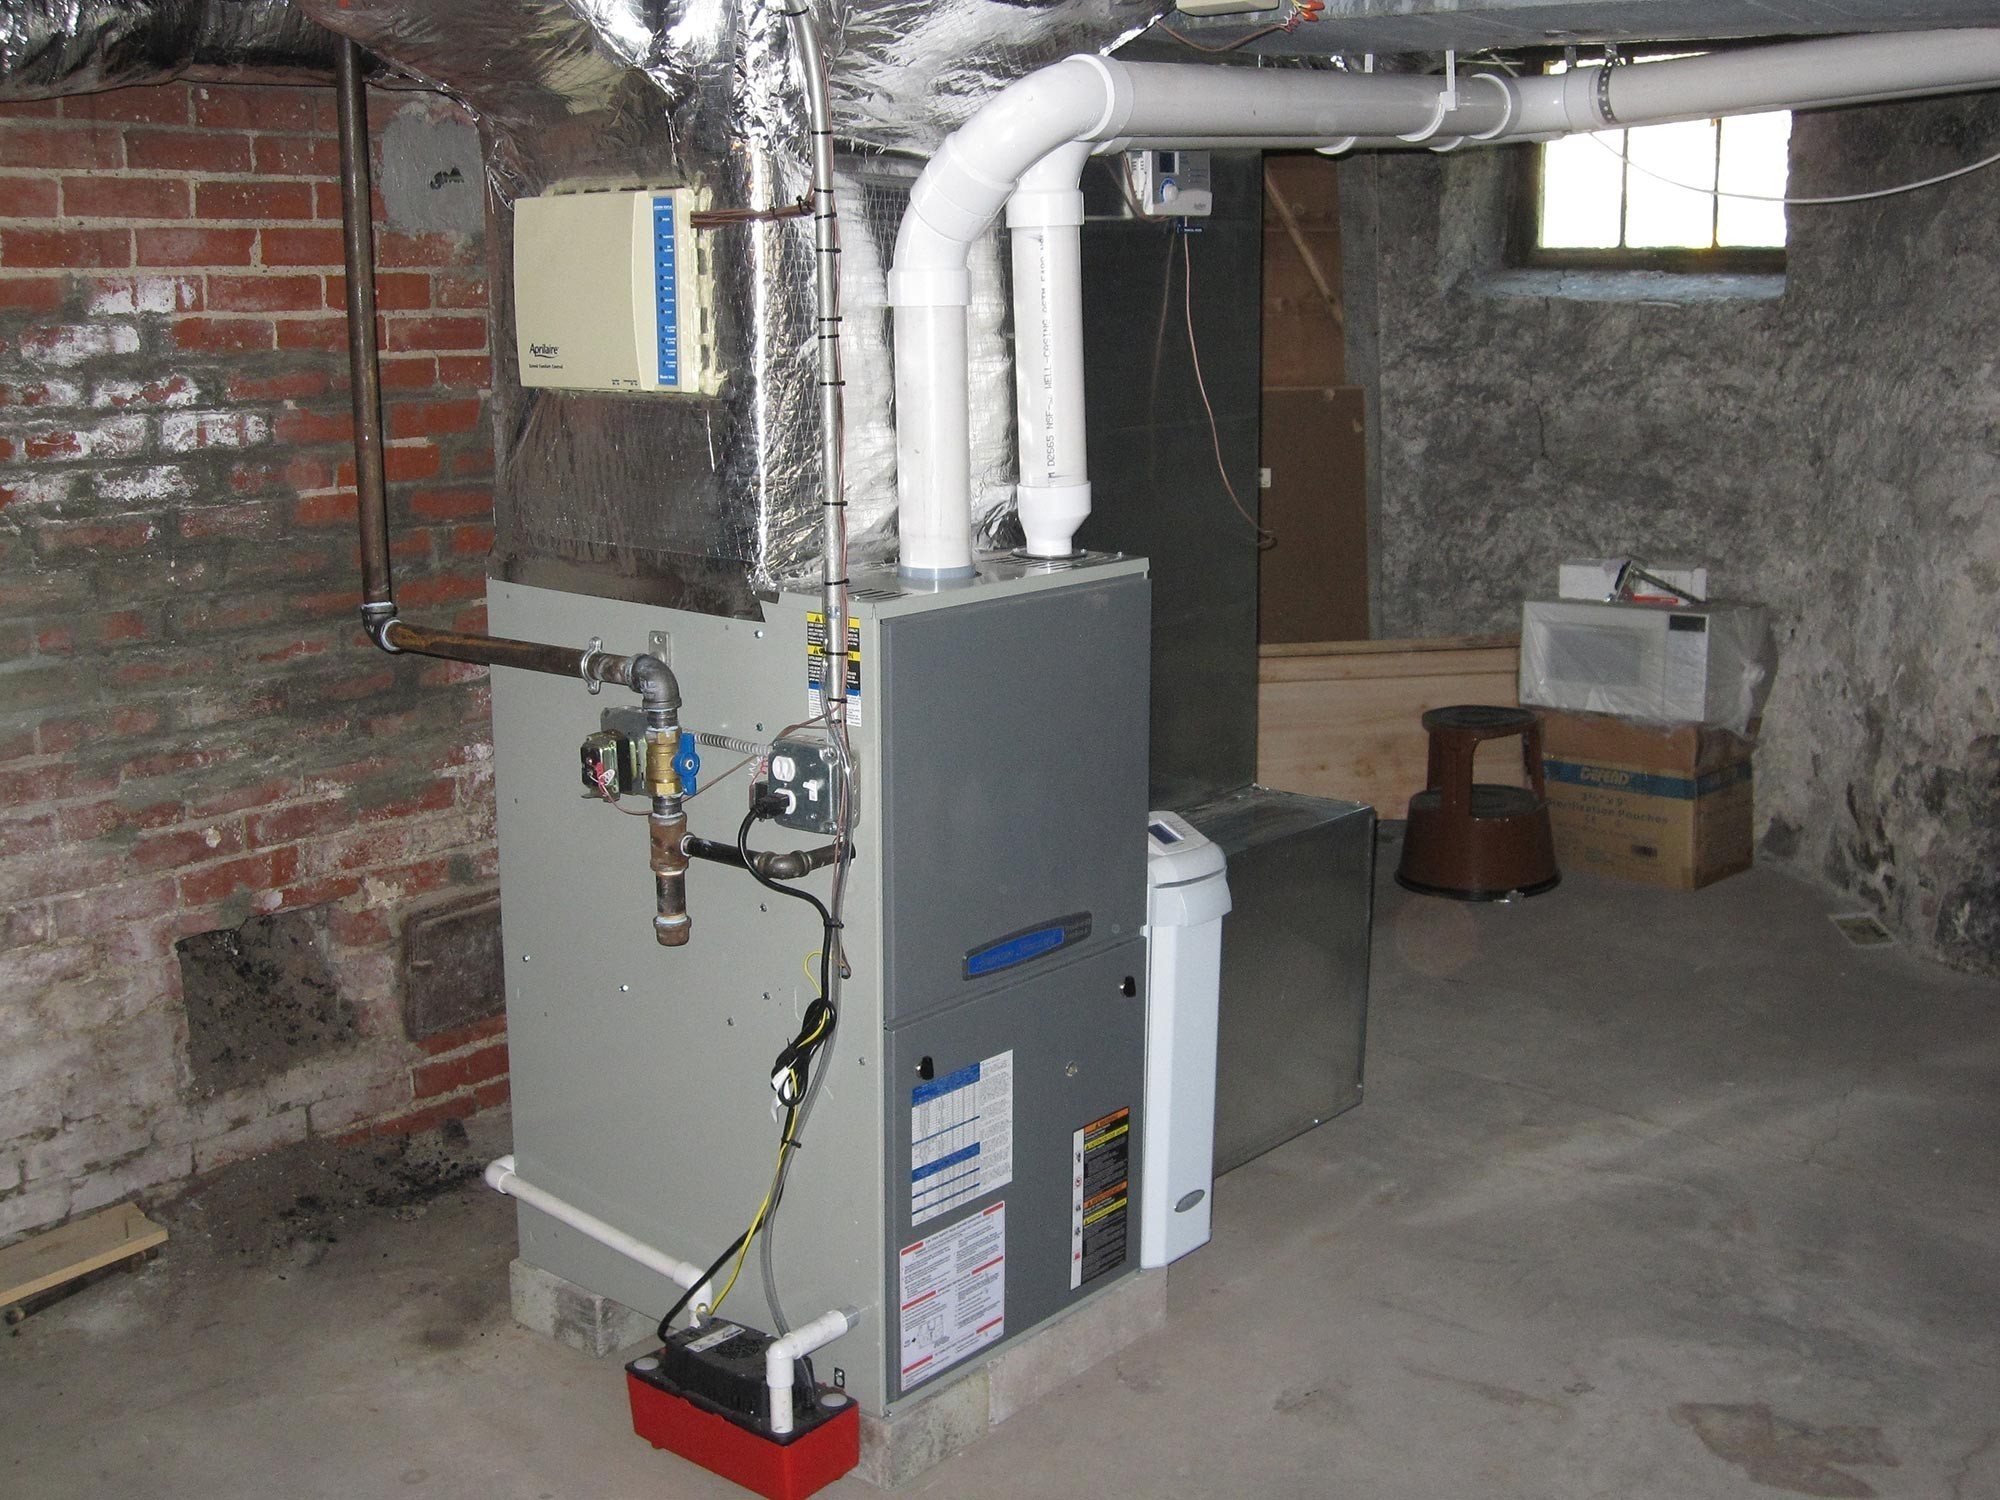 Gas Furnace With Air Cleaner And Humidifier Cooling